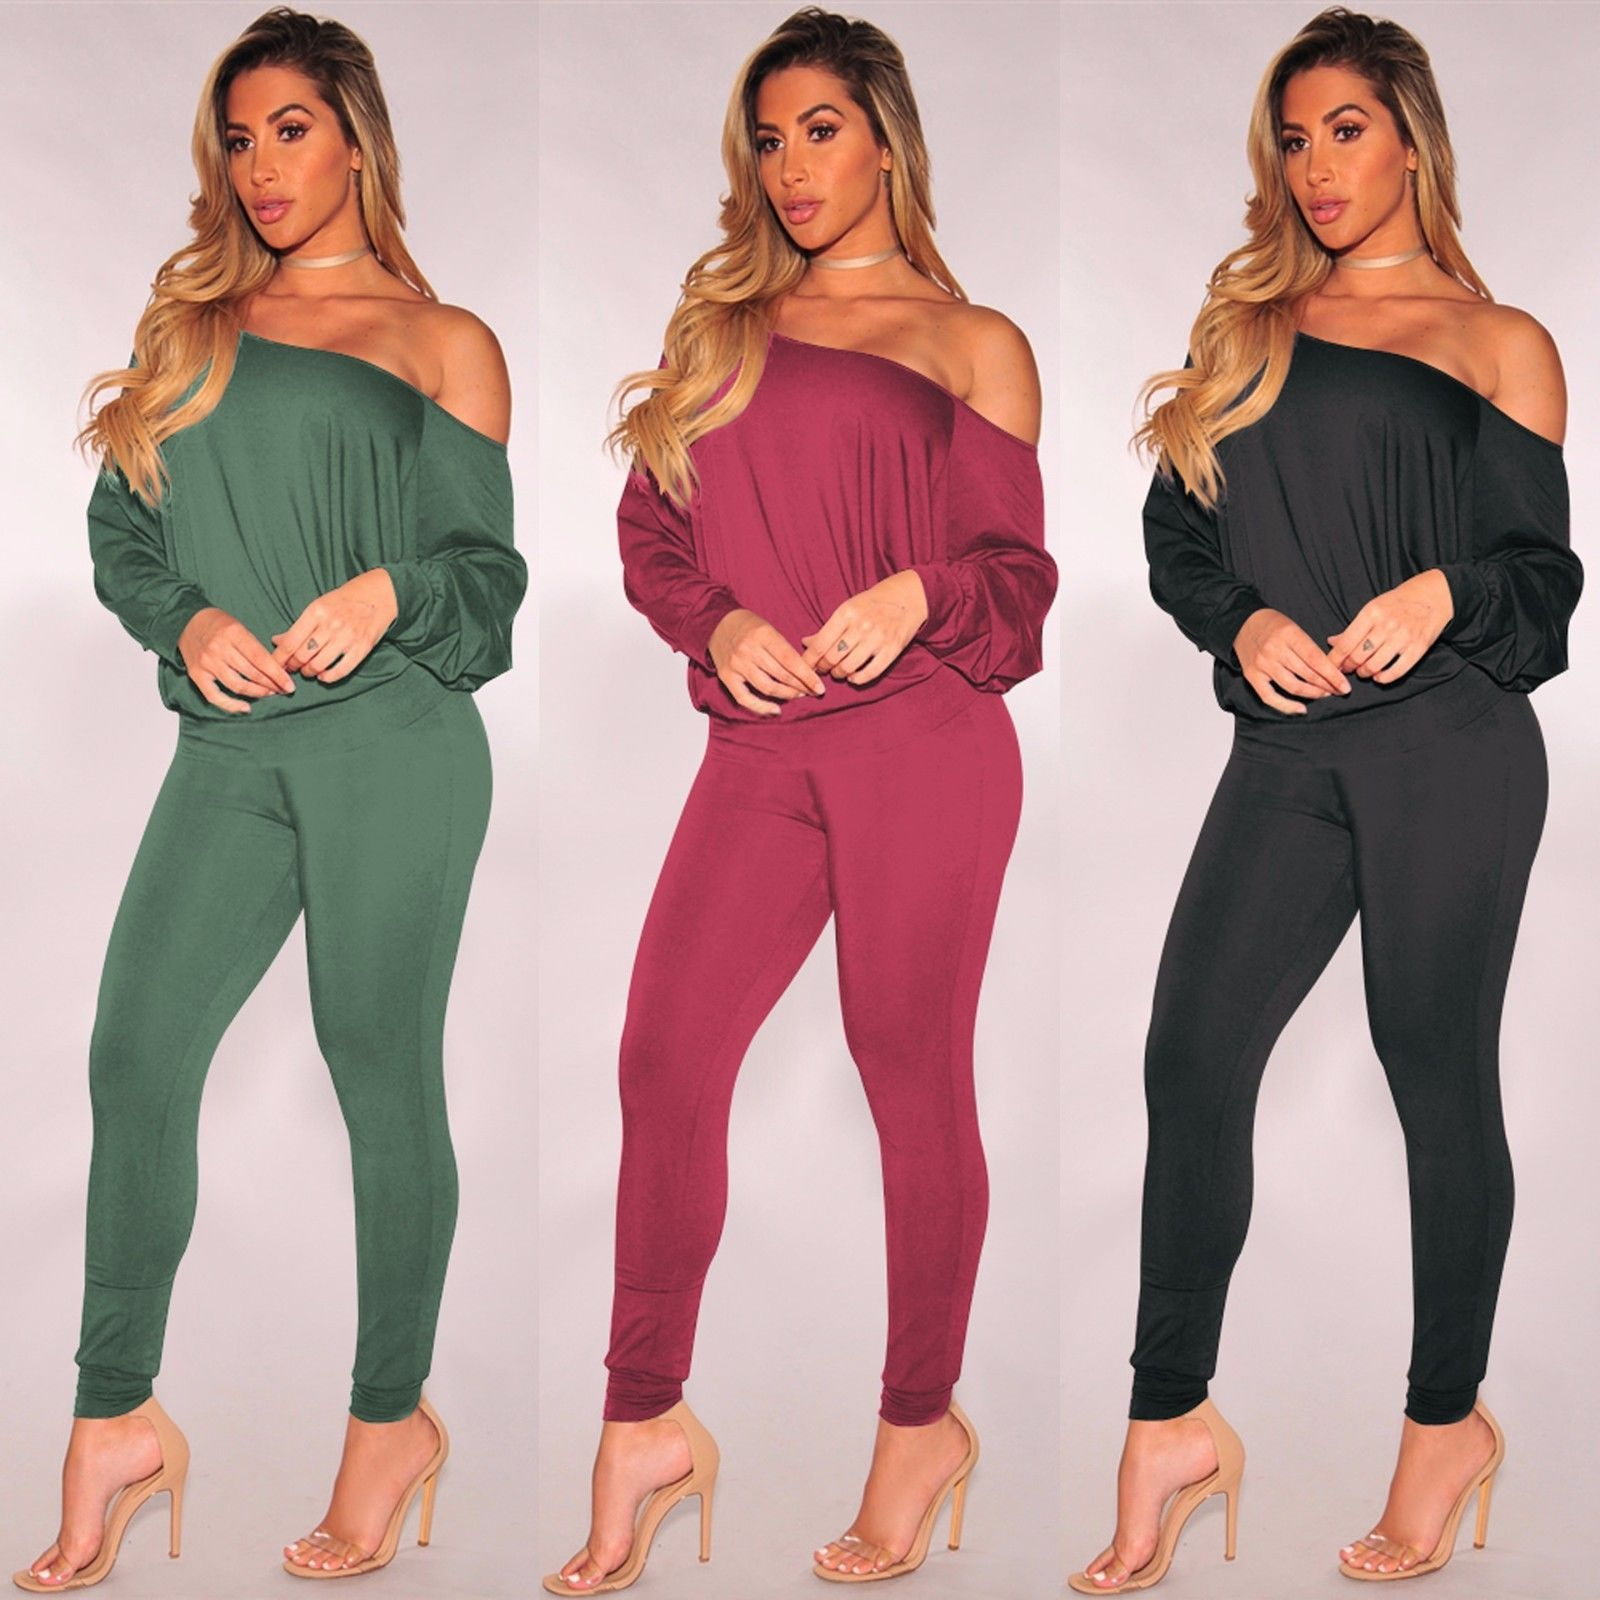 8b1953a134f  13.99 - Women One Shoulder Long Sleeves Bodycon Clubwear Long Club Party Jumpsuit  Romper  ebay  Fashion